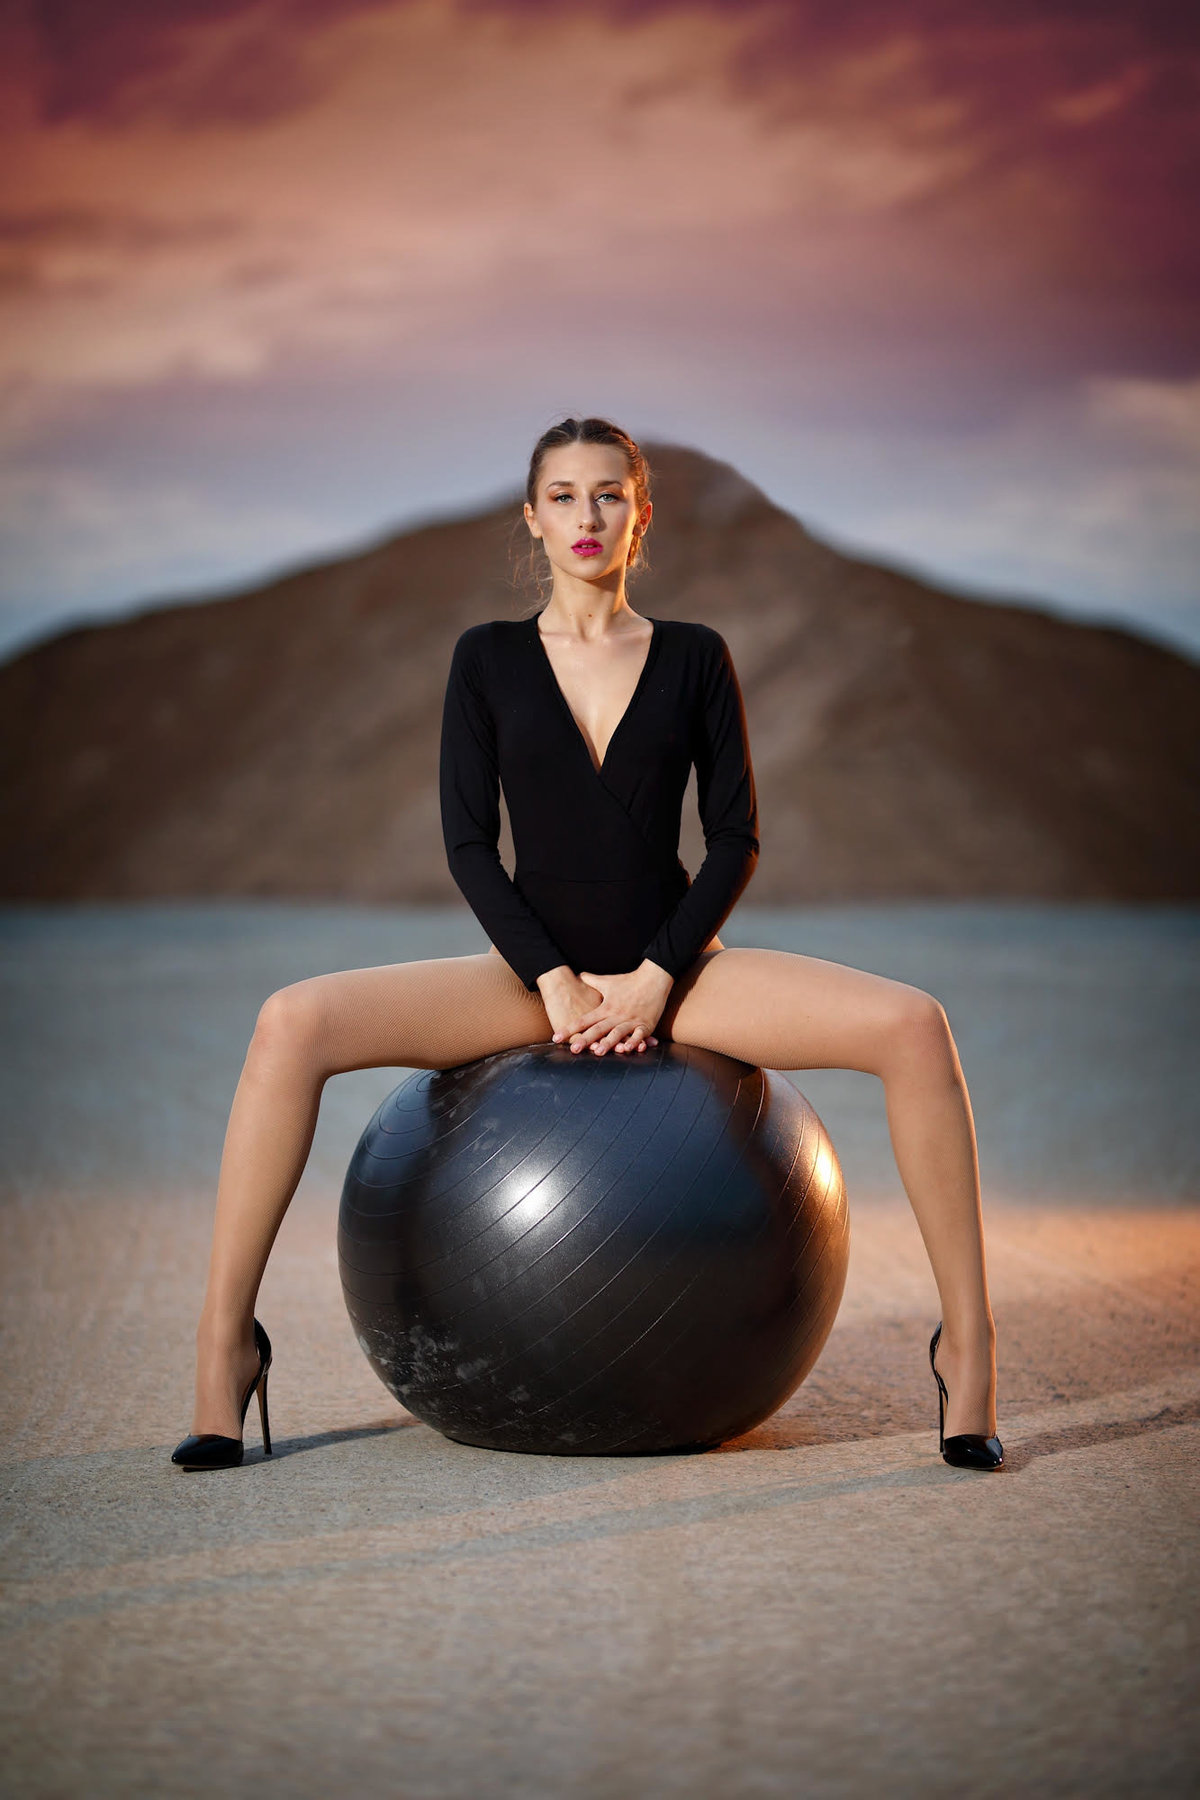 Natalie Setareh Makeup Artist Photoshoot Exercise Ball Kylie